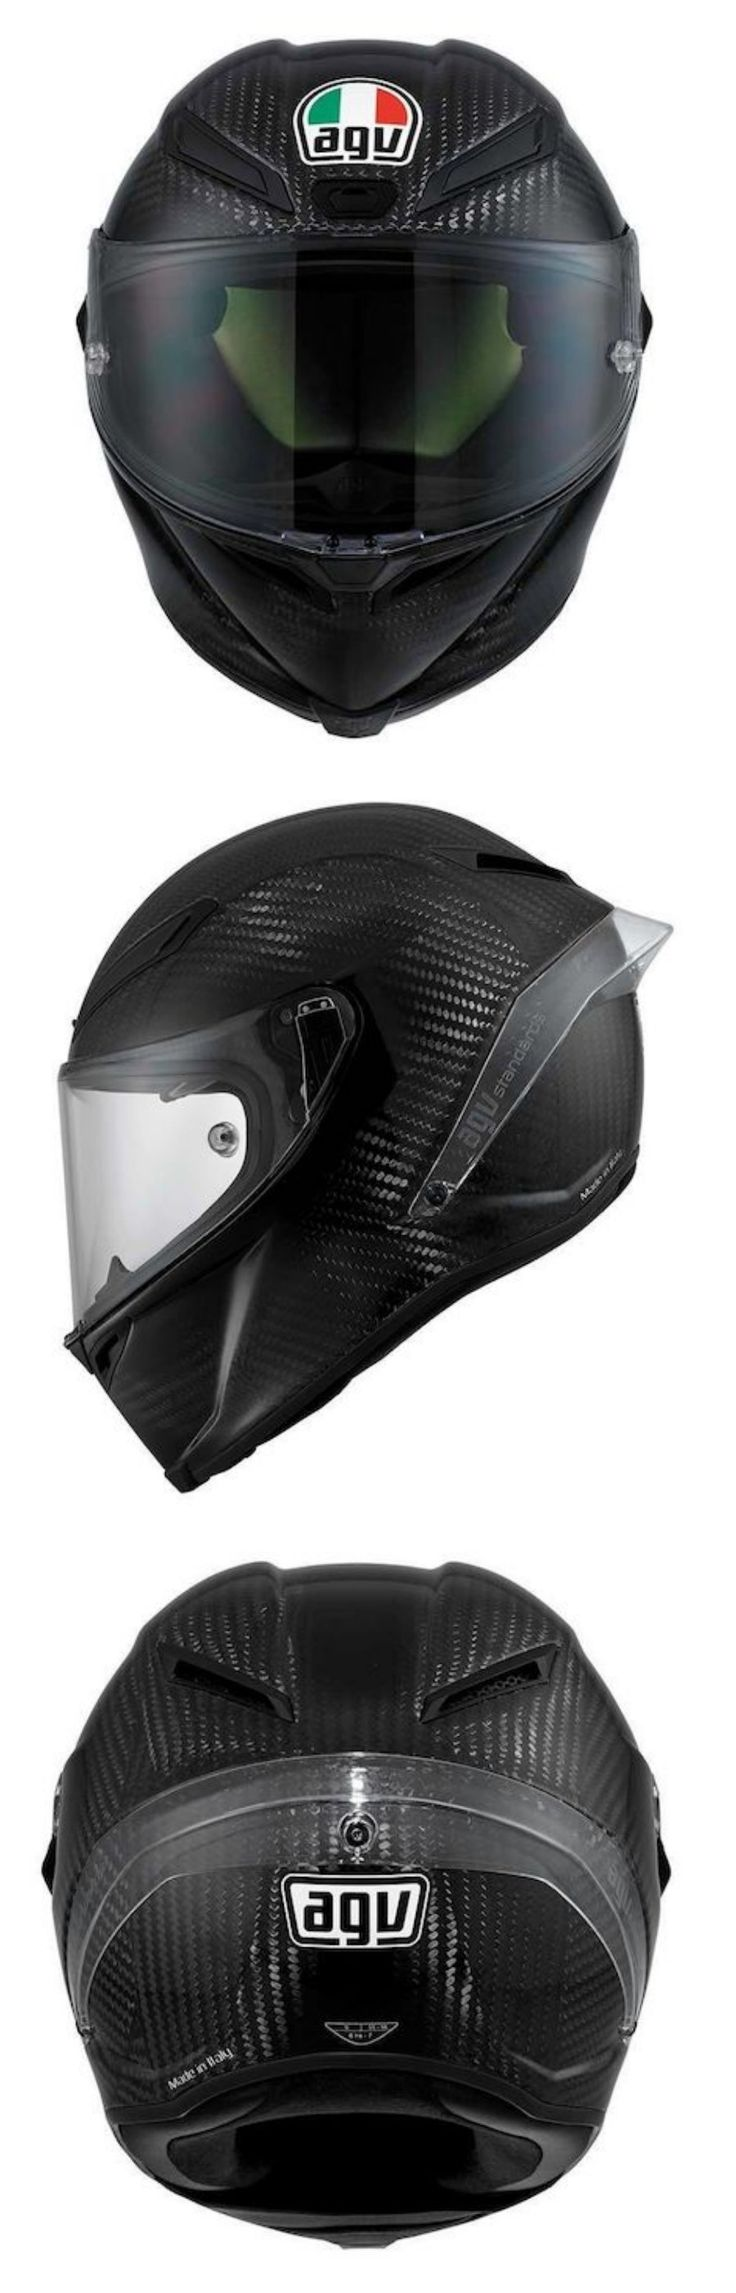 AGV Pista GP Carbon Motorcycle Helmets Tall